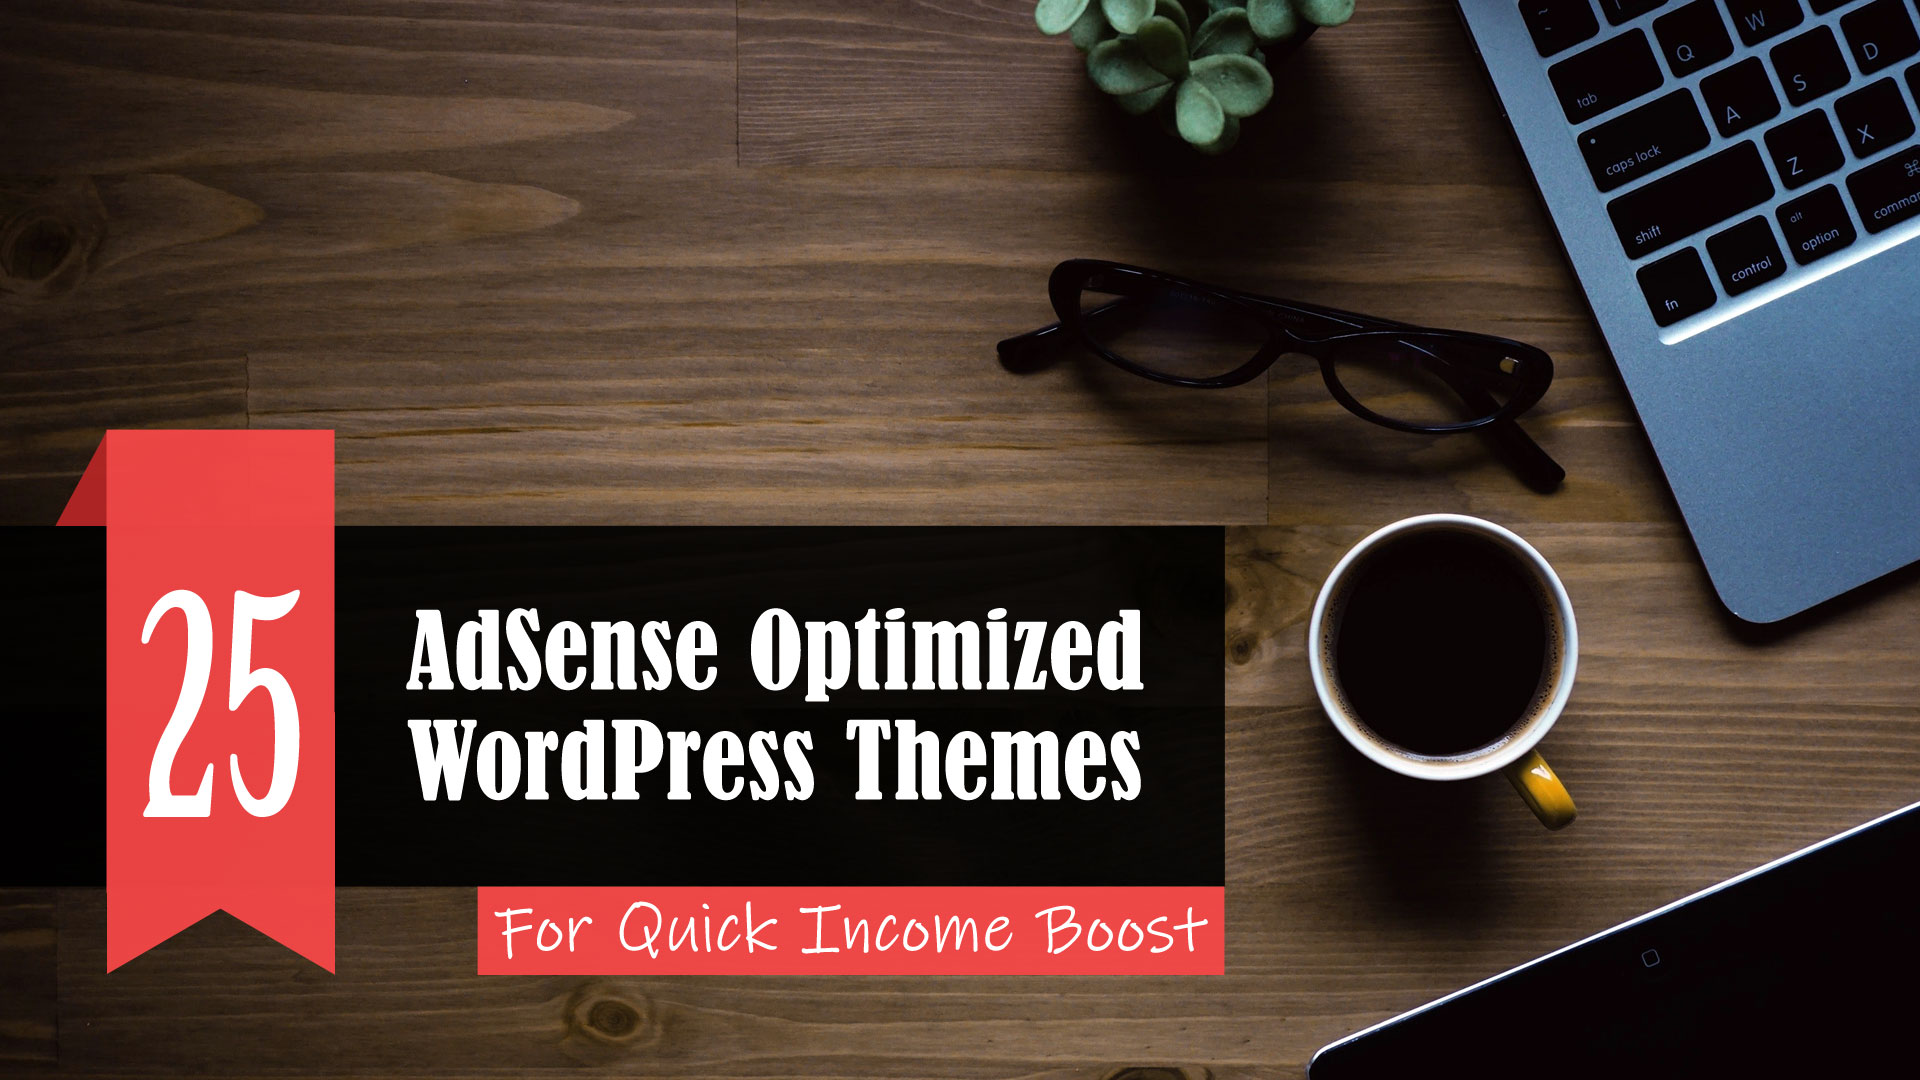 25 Best AdSense Optimized WordPress Themes